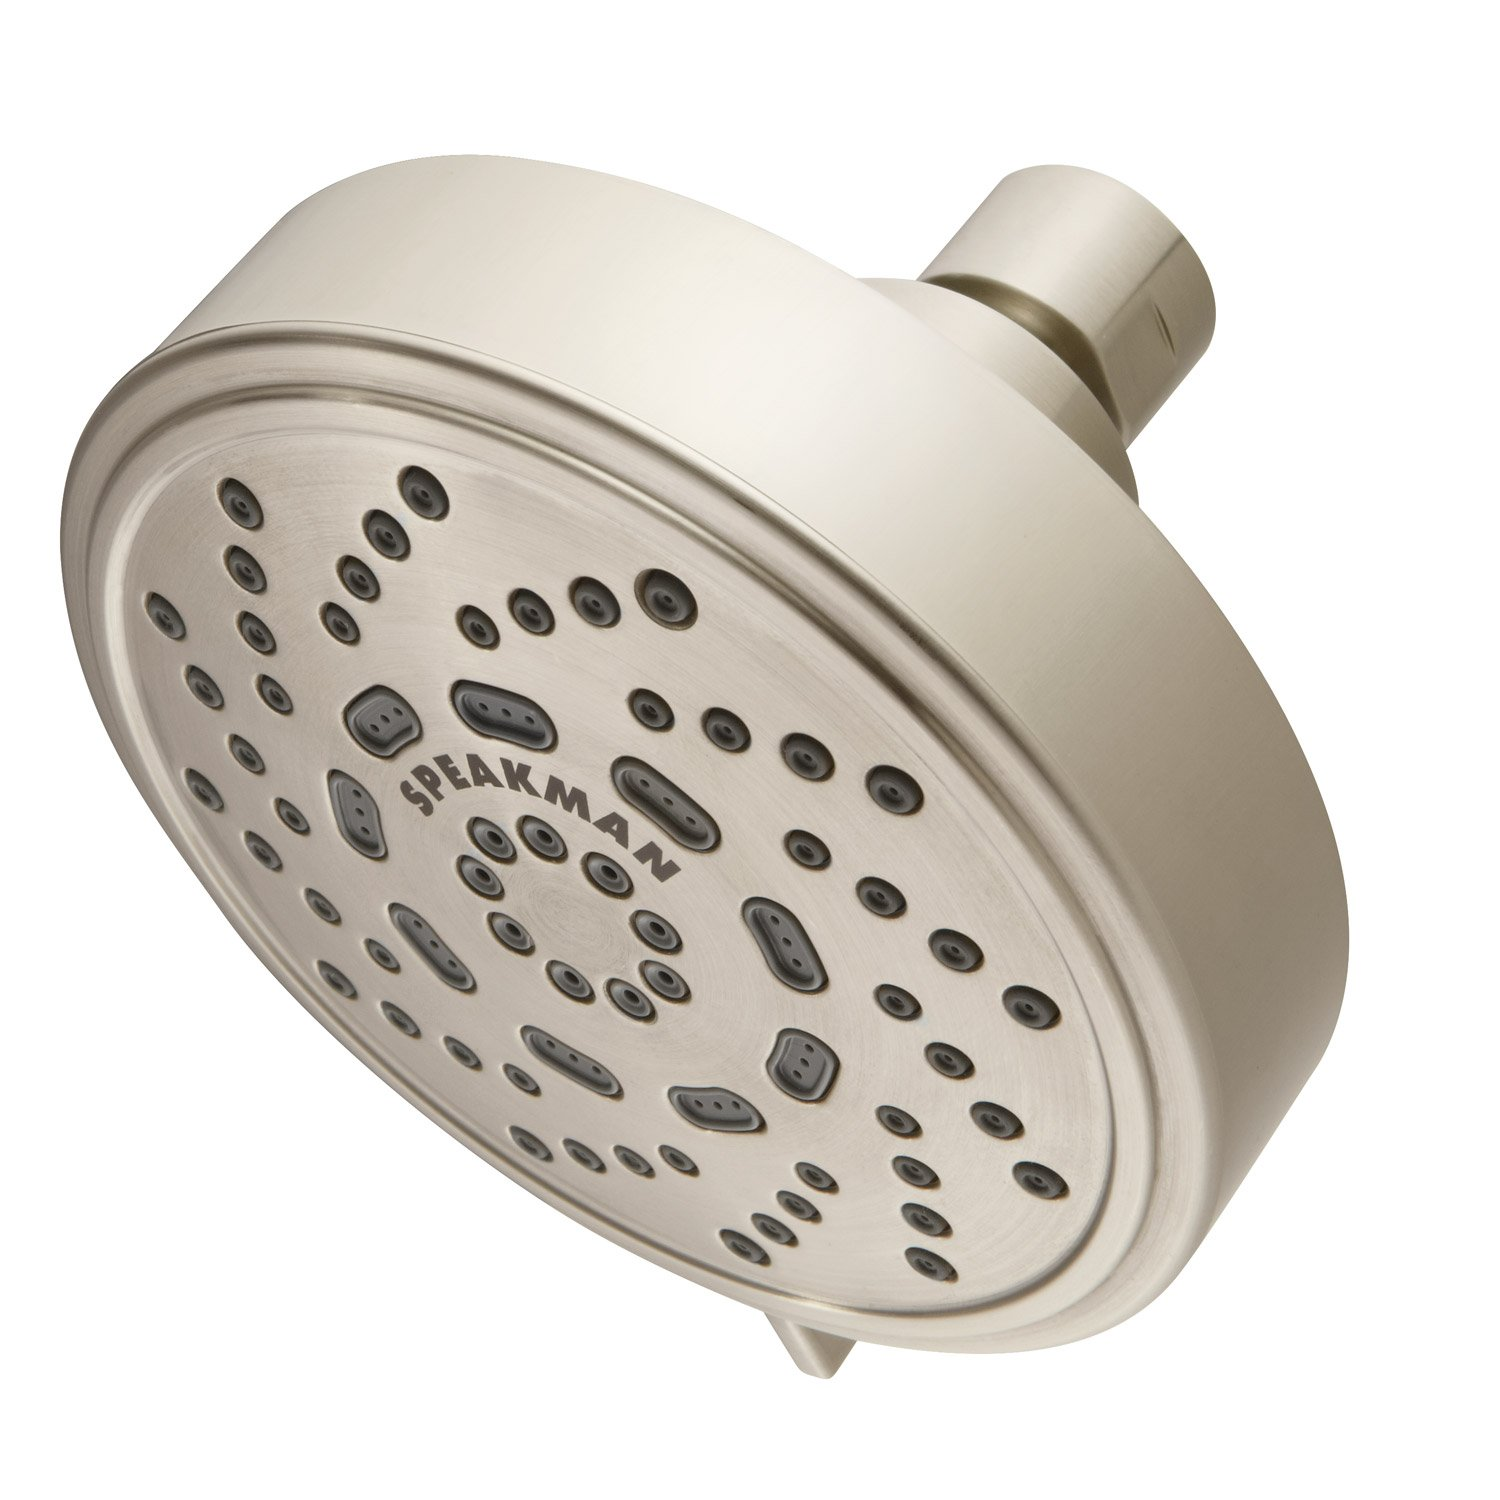 Speakman S-4200-BN-E15 Echo Adjustable 1.5 GPM Shower Head, Brushed Nickel